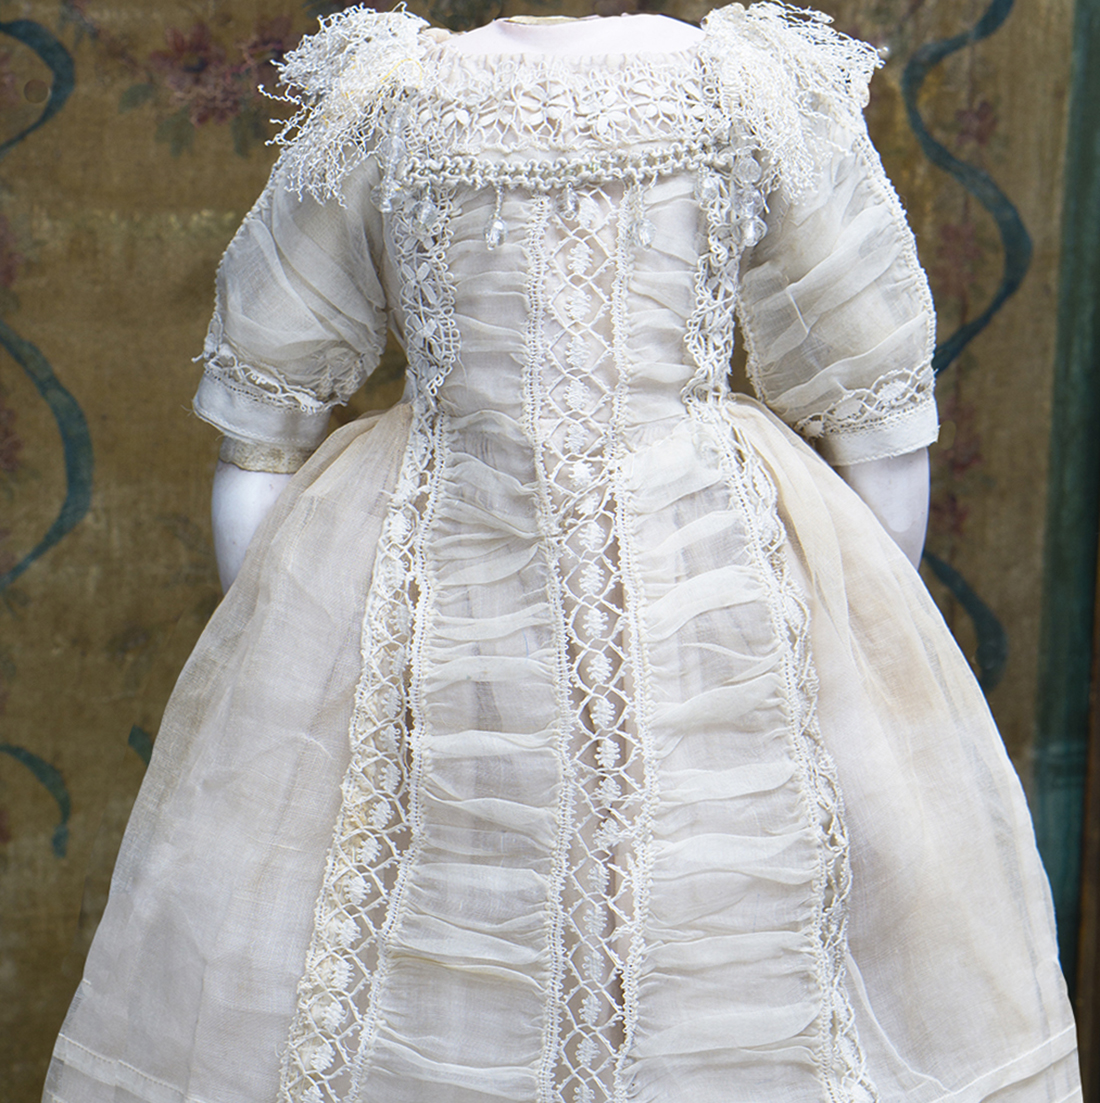 Antique Fashion doll dress